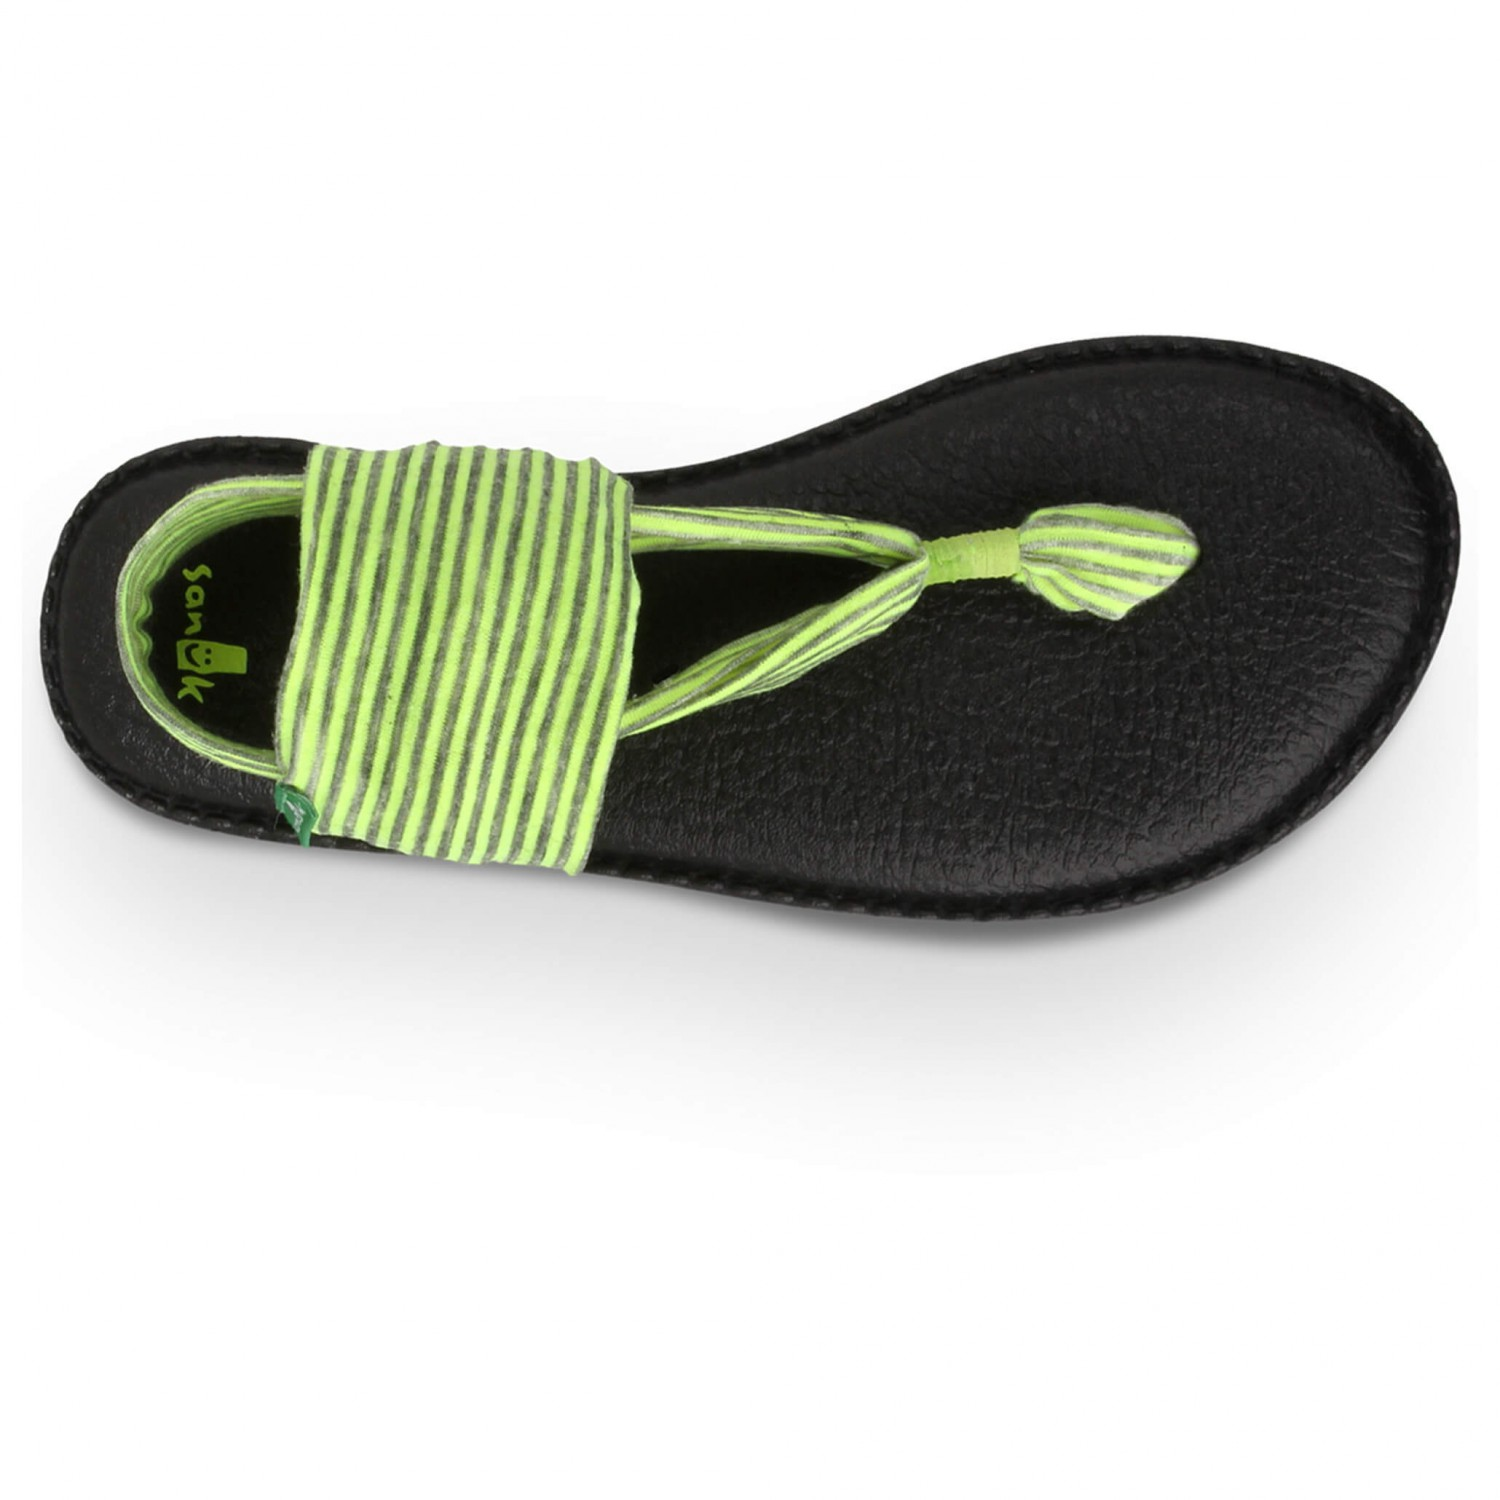 Sanuk Yoga Shoes Amazon: Sanuk Yoga Sling 2 - Sandals Women's